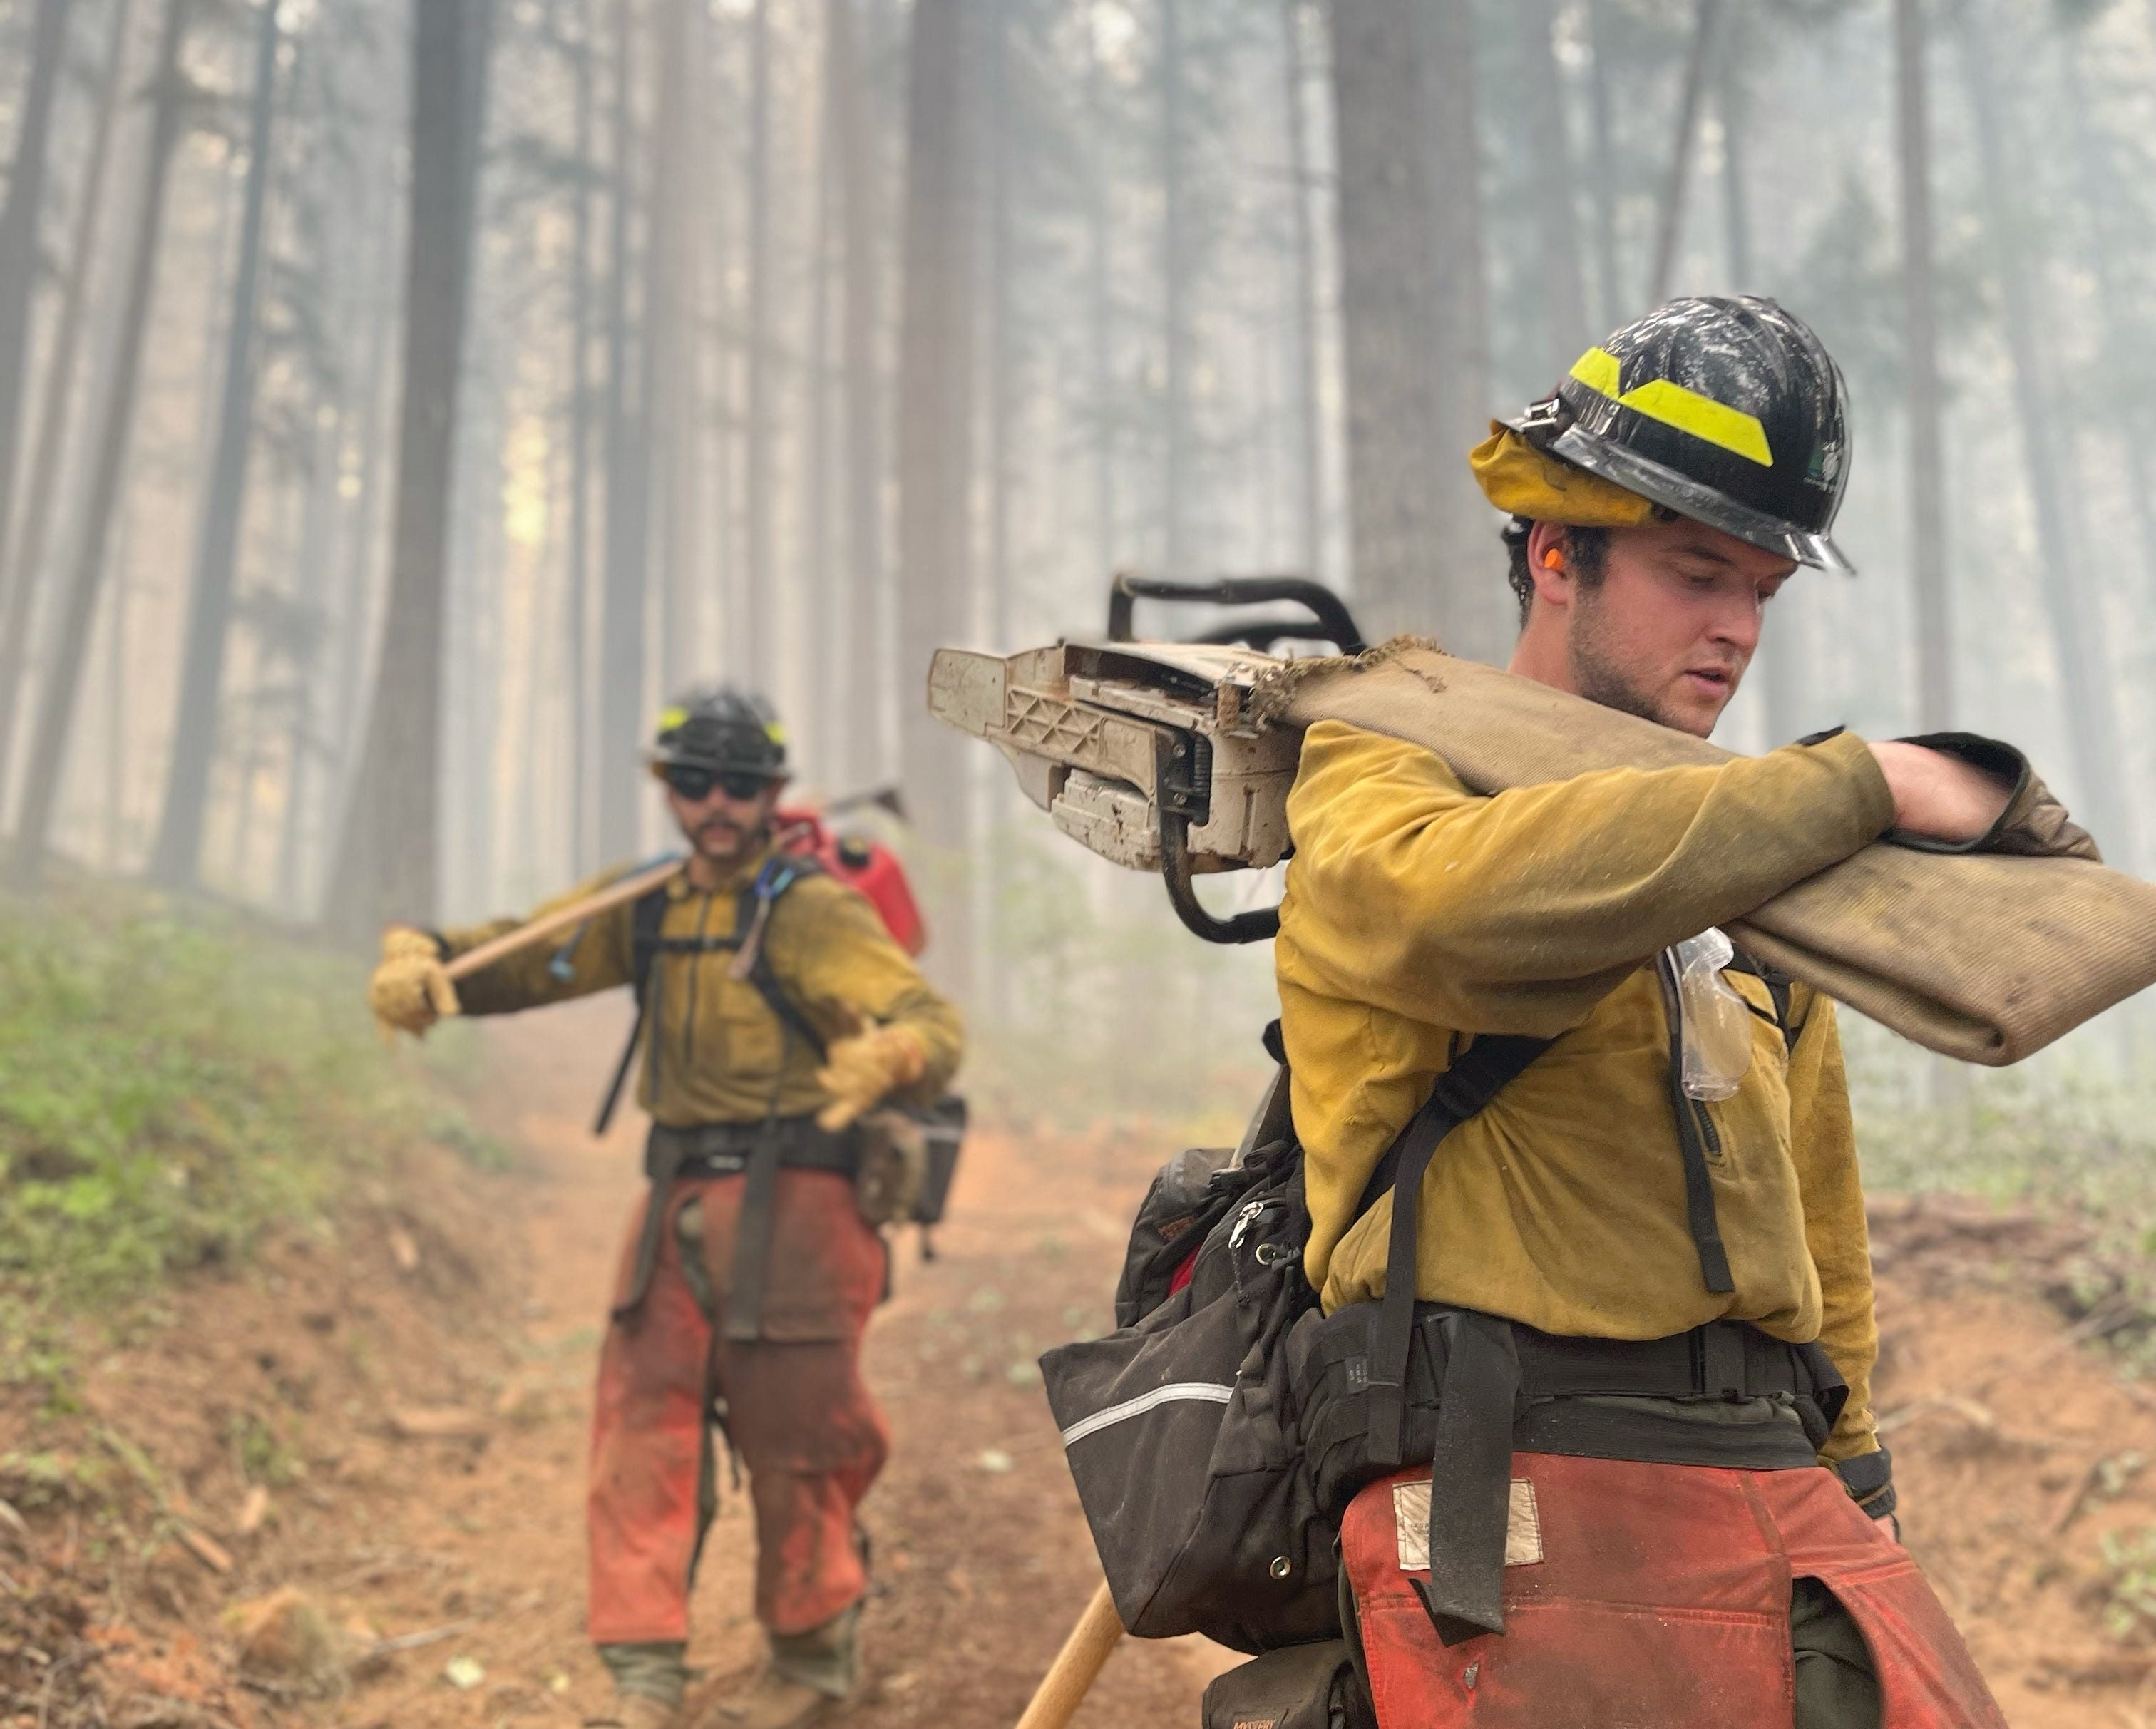 Members of a new hand crew from Clackamas County, Ore., hike down into a drainage with equipment to build a fire line on the Jack Fire in Southern Oregon this year